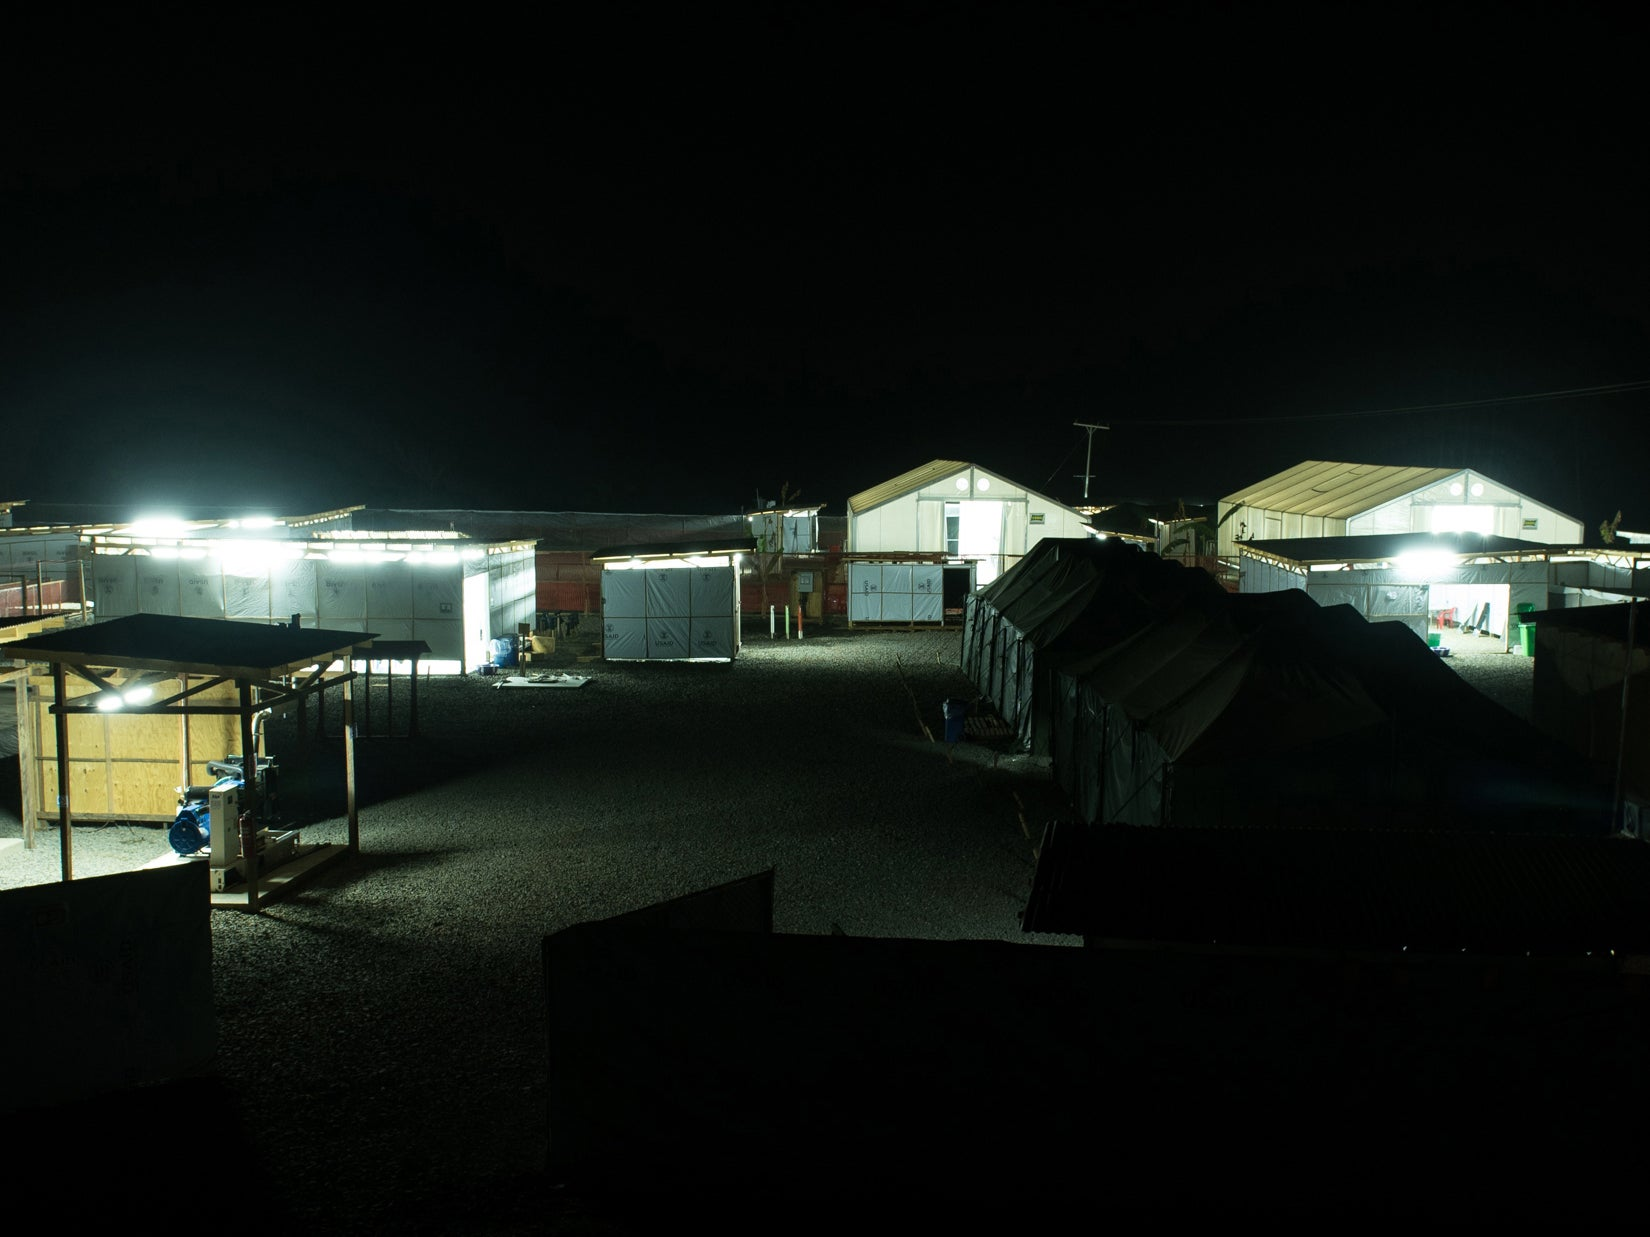 View of an Ebola treatment unit in Liberia, at night